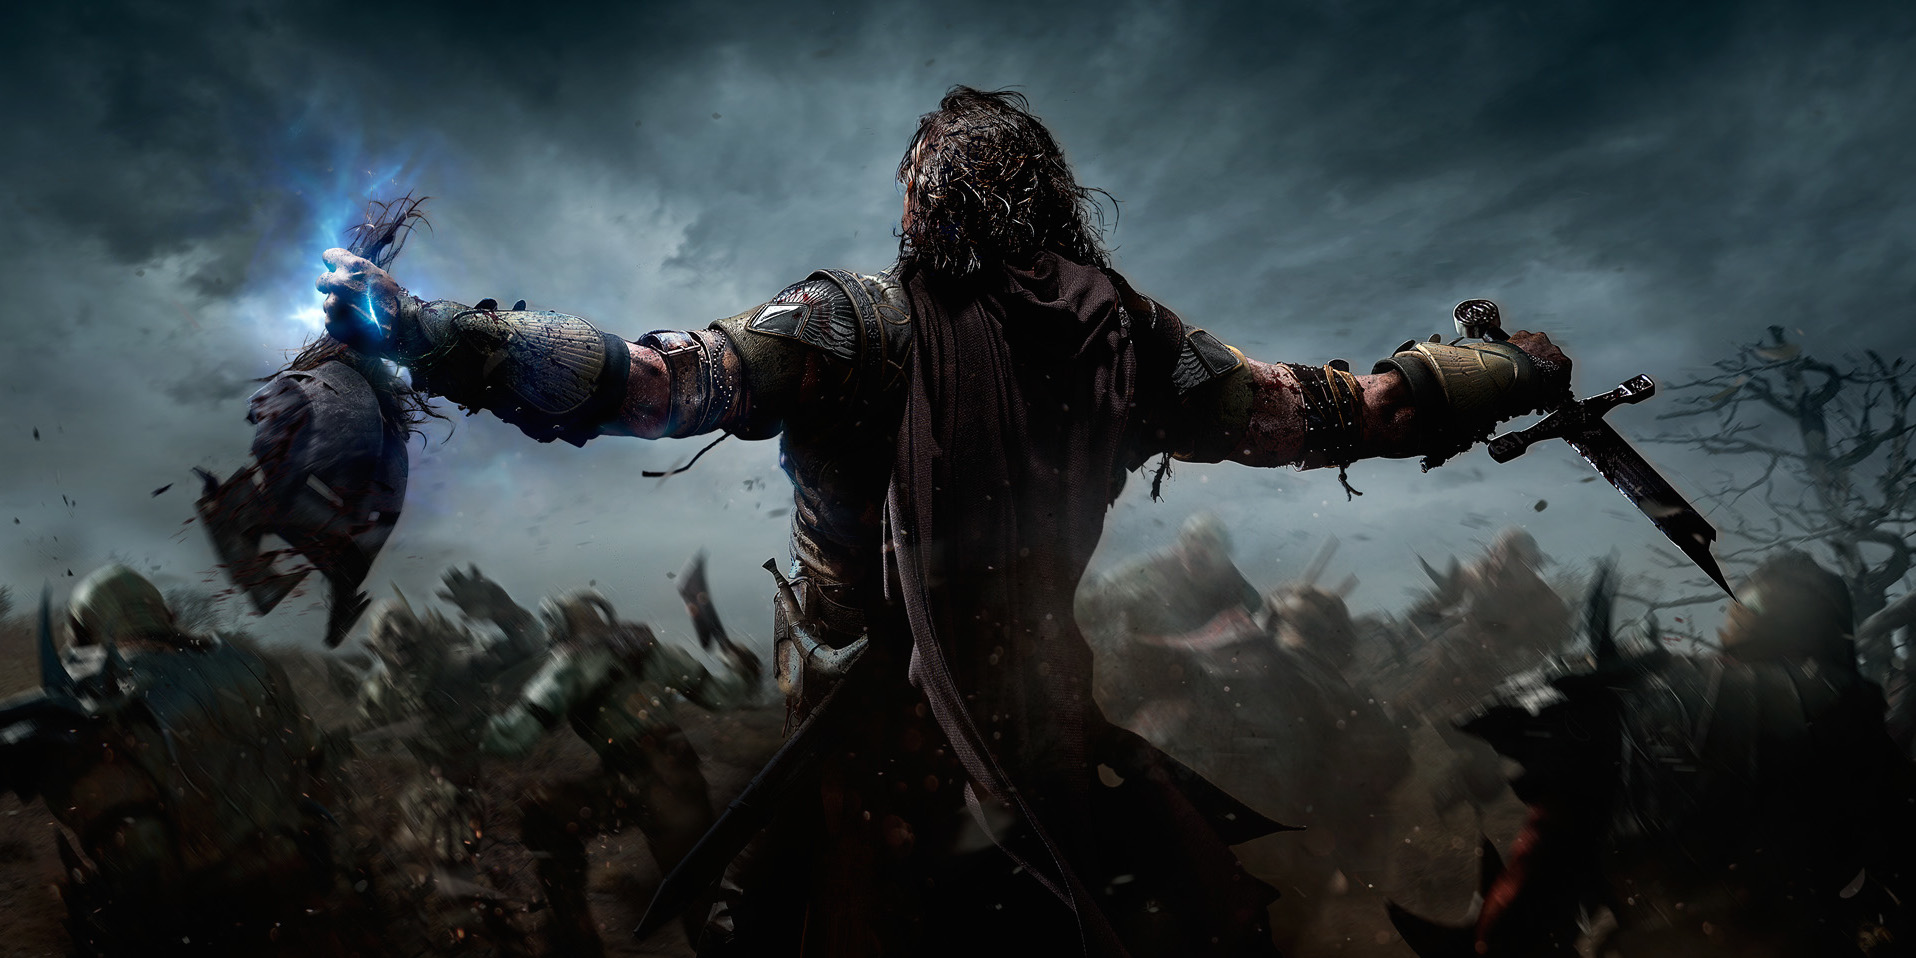 The Top 10 Abilities in Middle-earth: Shadow of Mordor